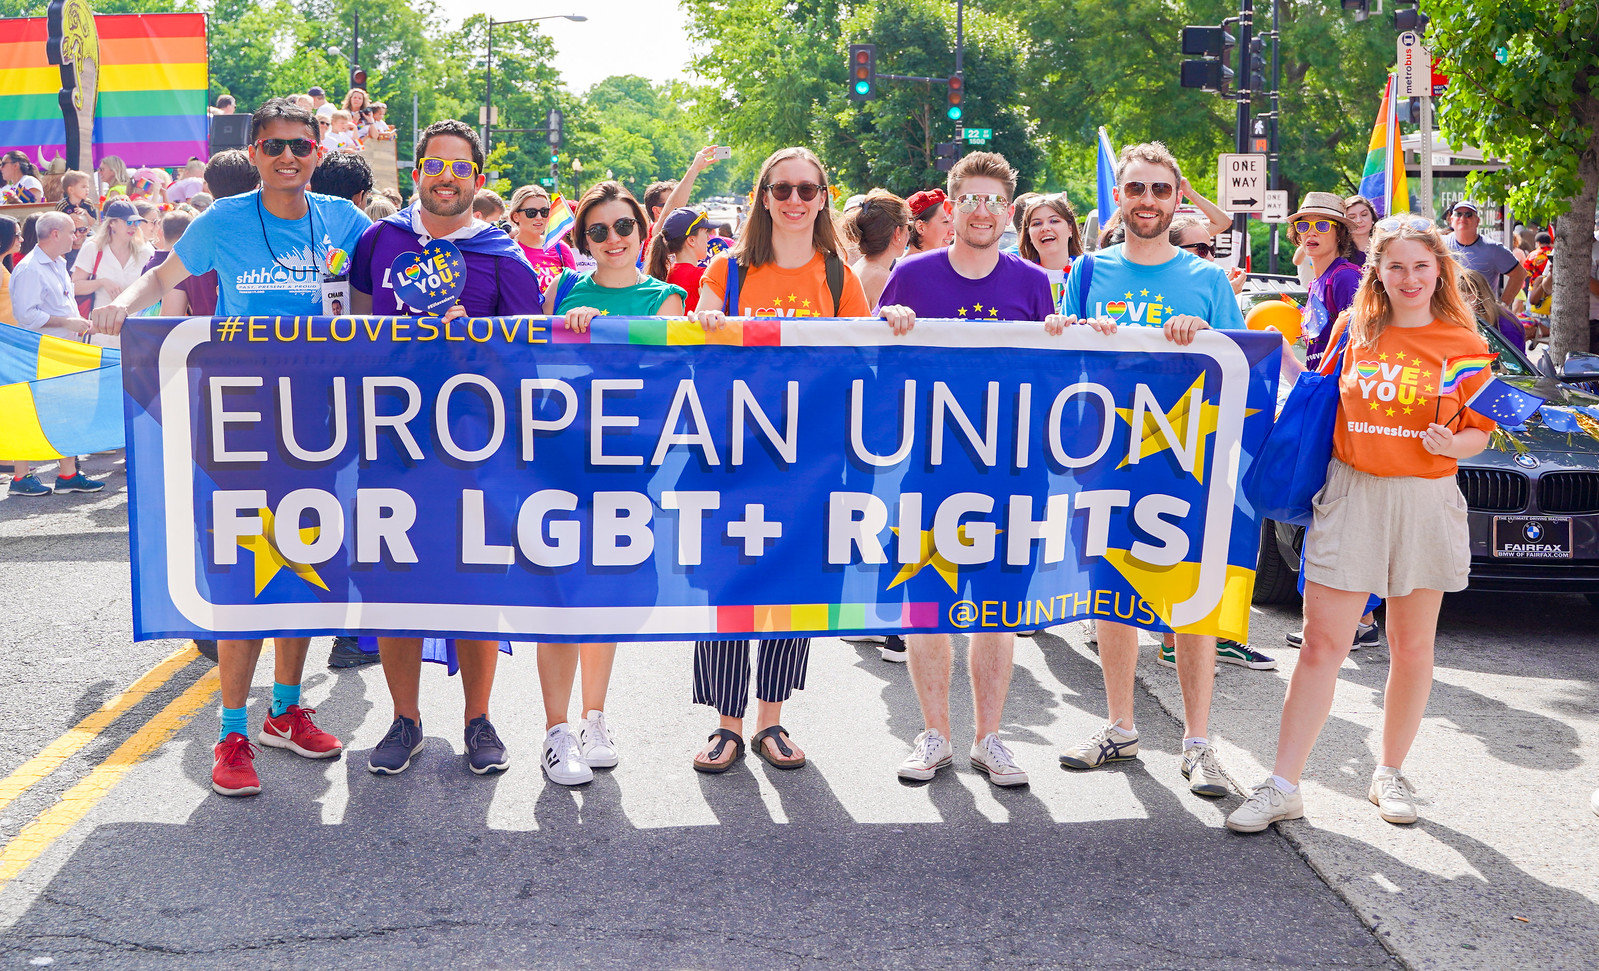 2019.06.08 Capital Pride Parade, Washington, DC USA 1590024